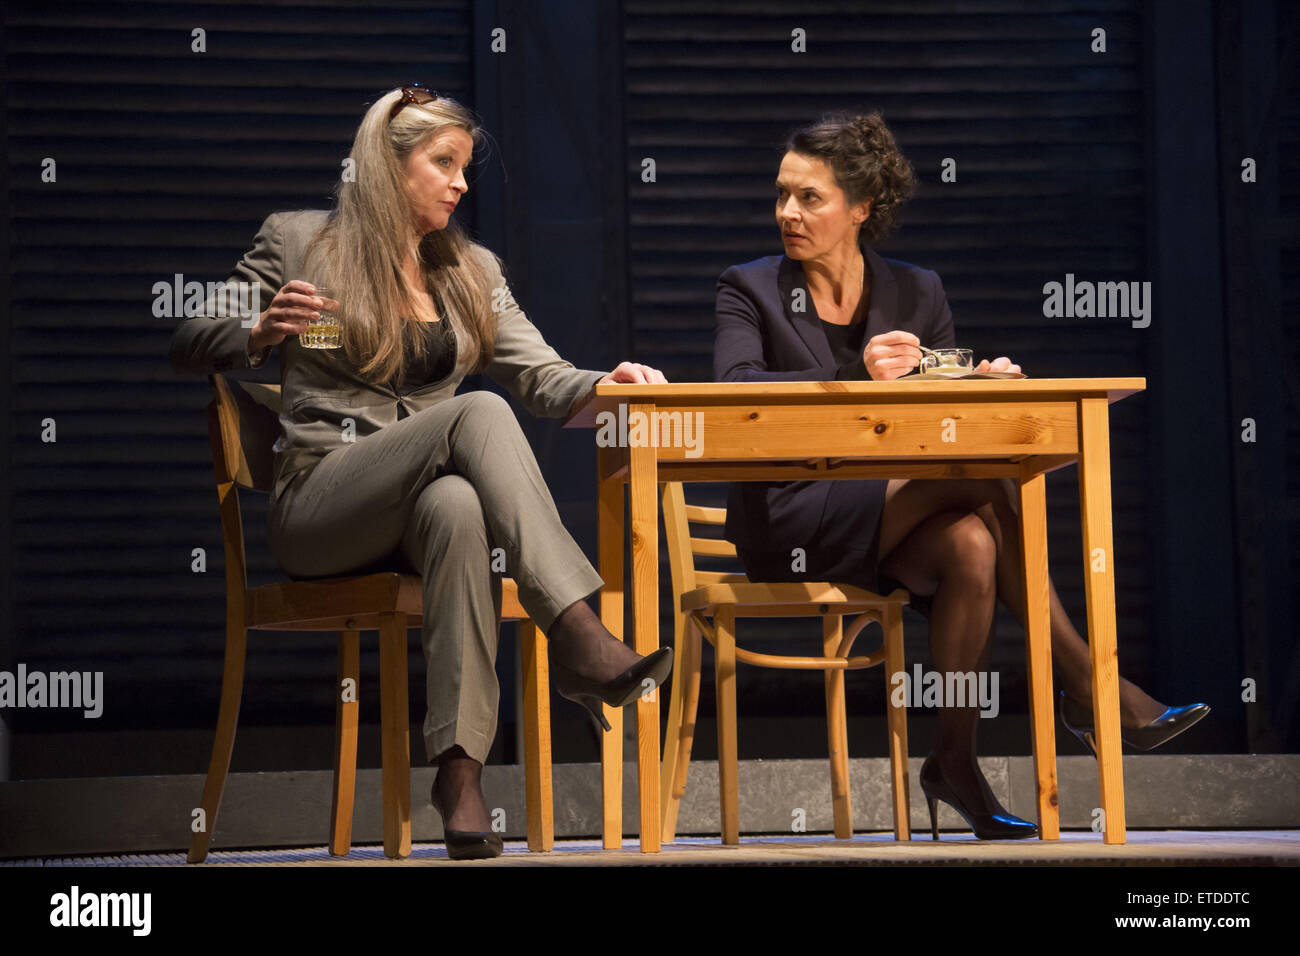 Rehearsel for the theatre play 'Chuzpe' at Hamburger Kammerspiele  Featuring: Meike Harten, Ulrike Folkerts - Stock Image